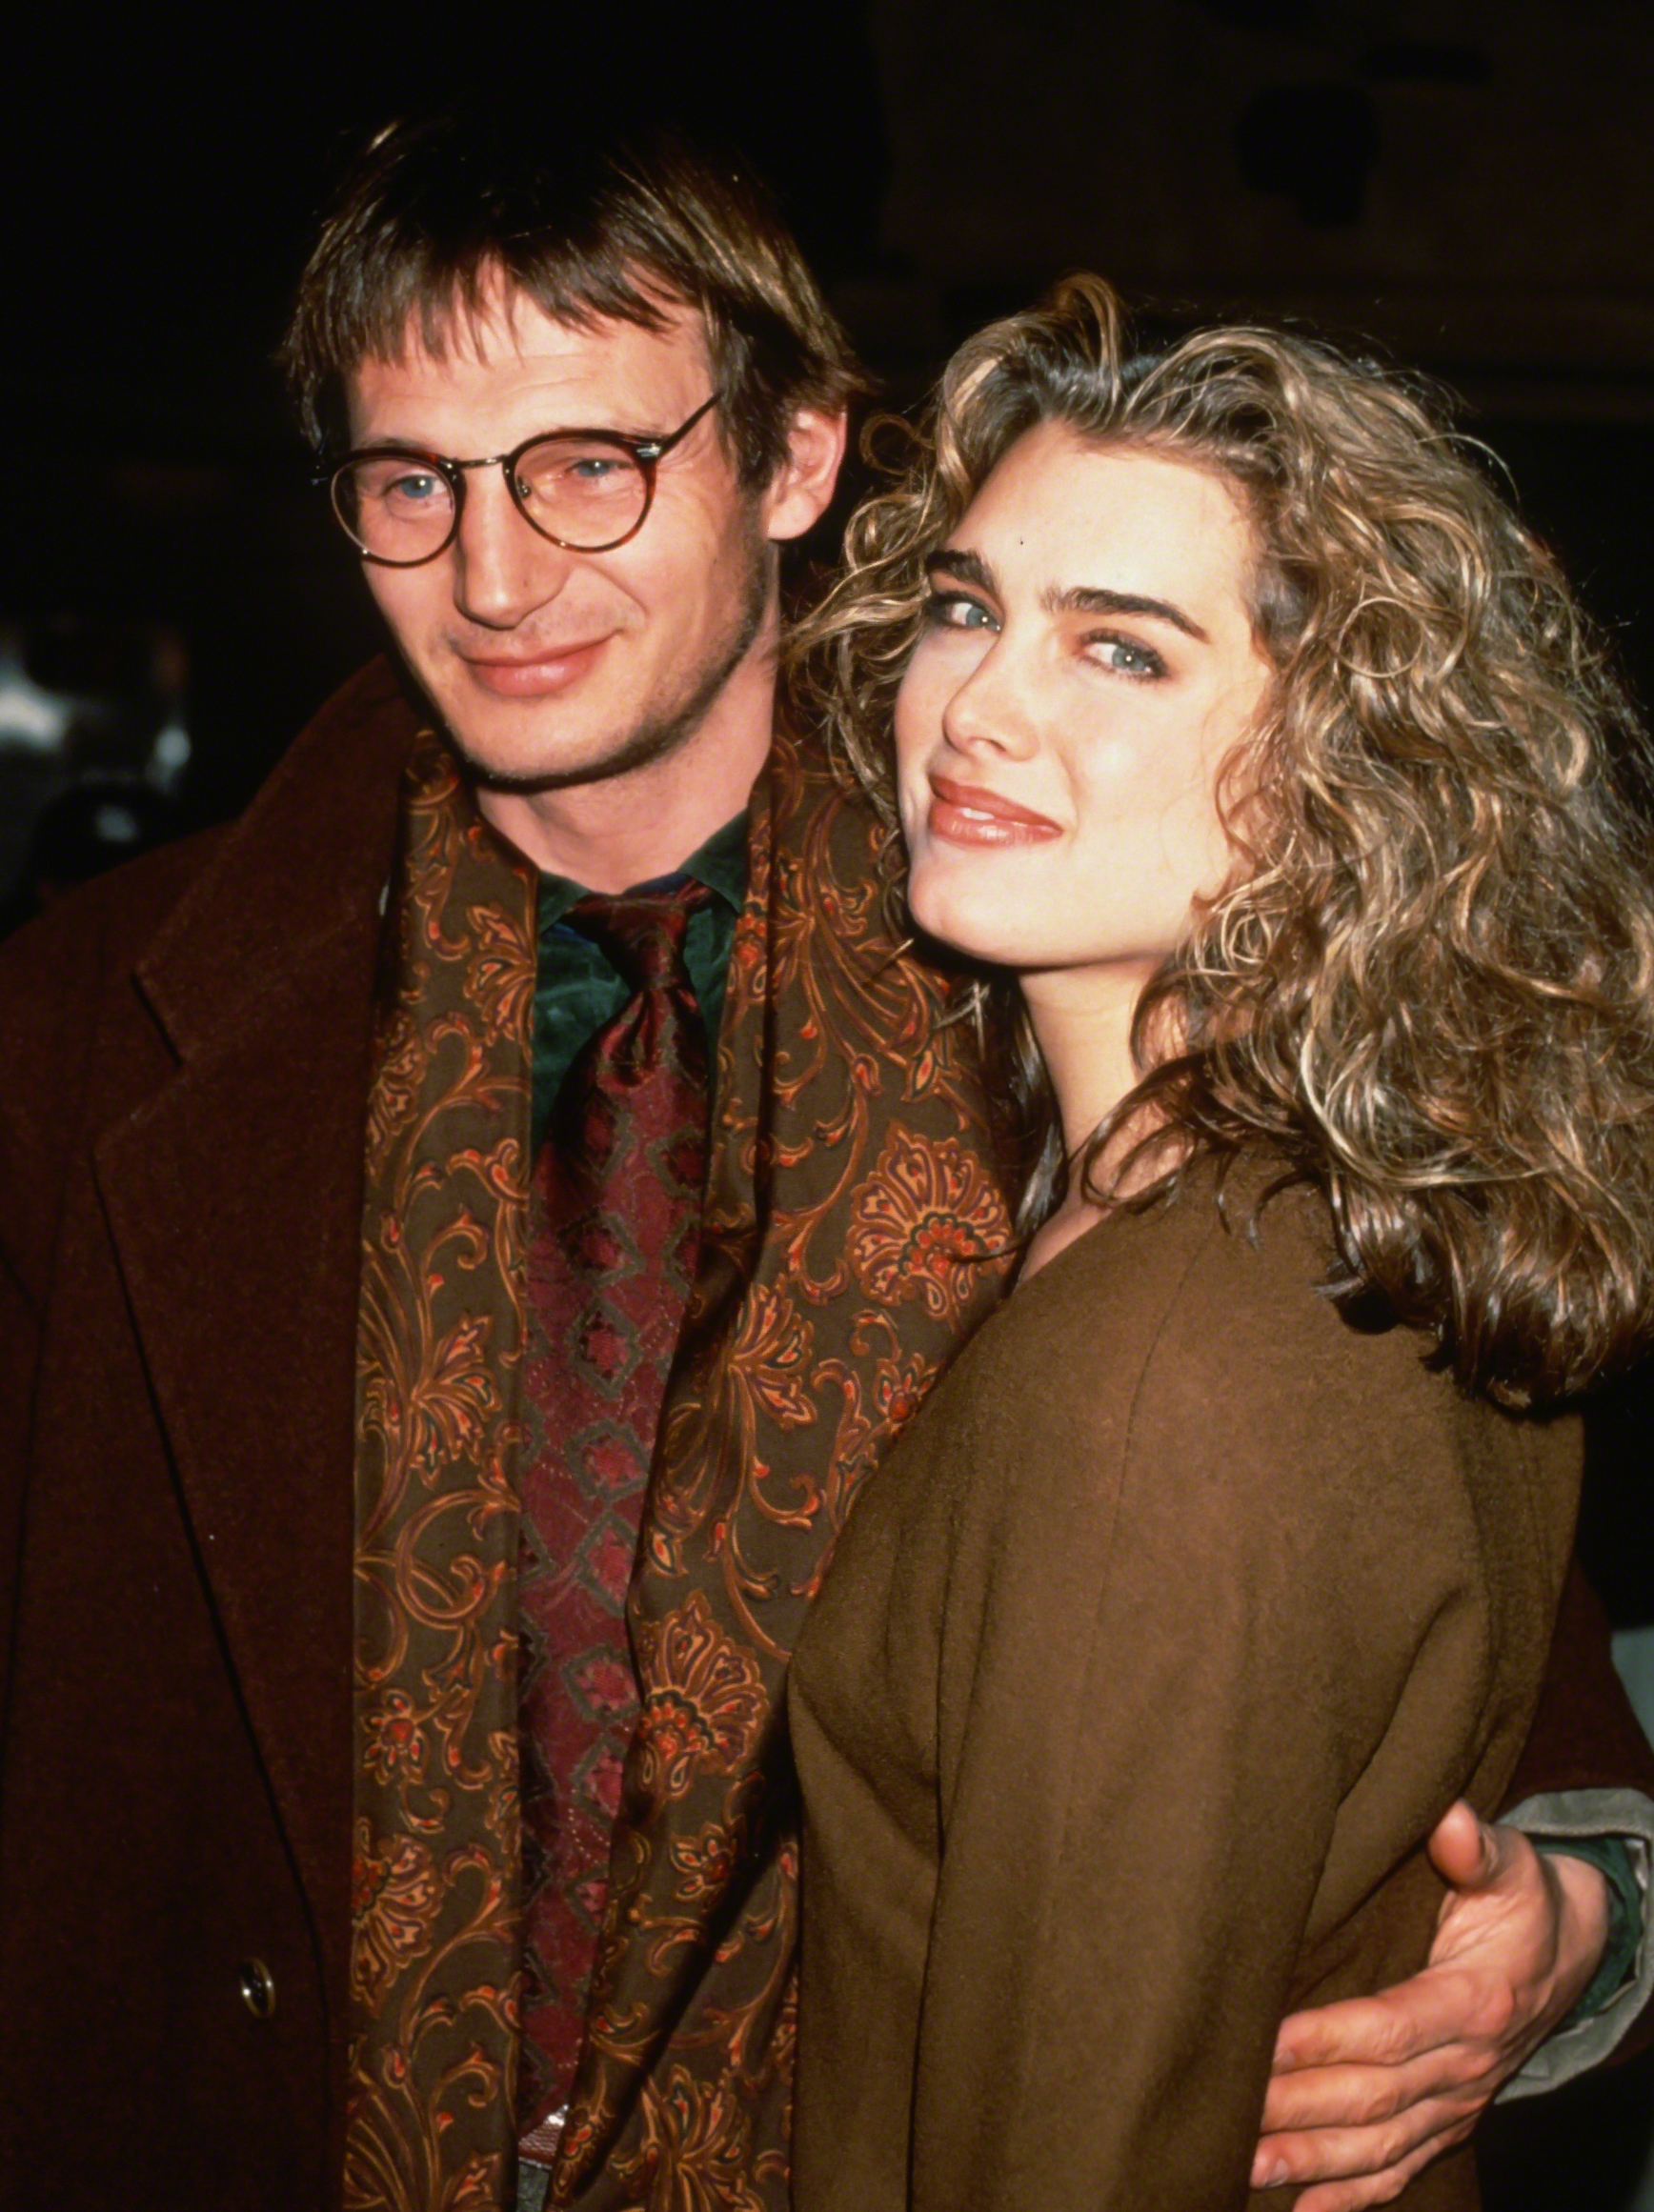 Liam Neeson And Olivia Wilde Are Paul Haggis Third Person: Liam Neeson Won't Deny He Was A Jerk To Brooke Shields